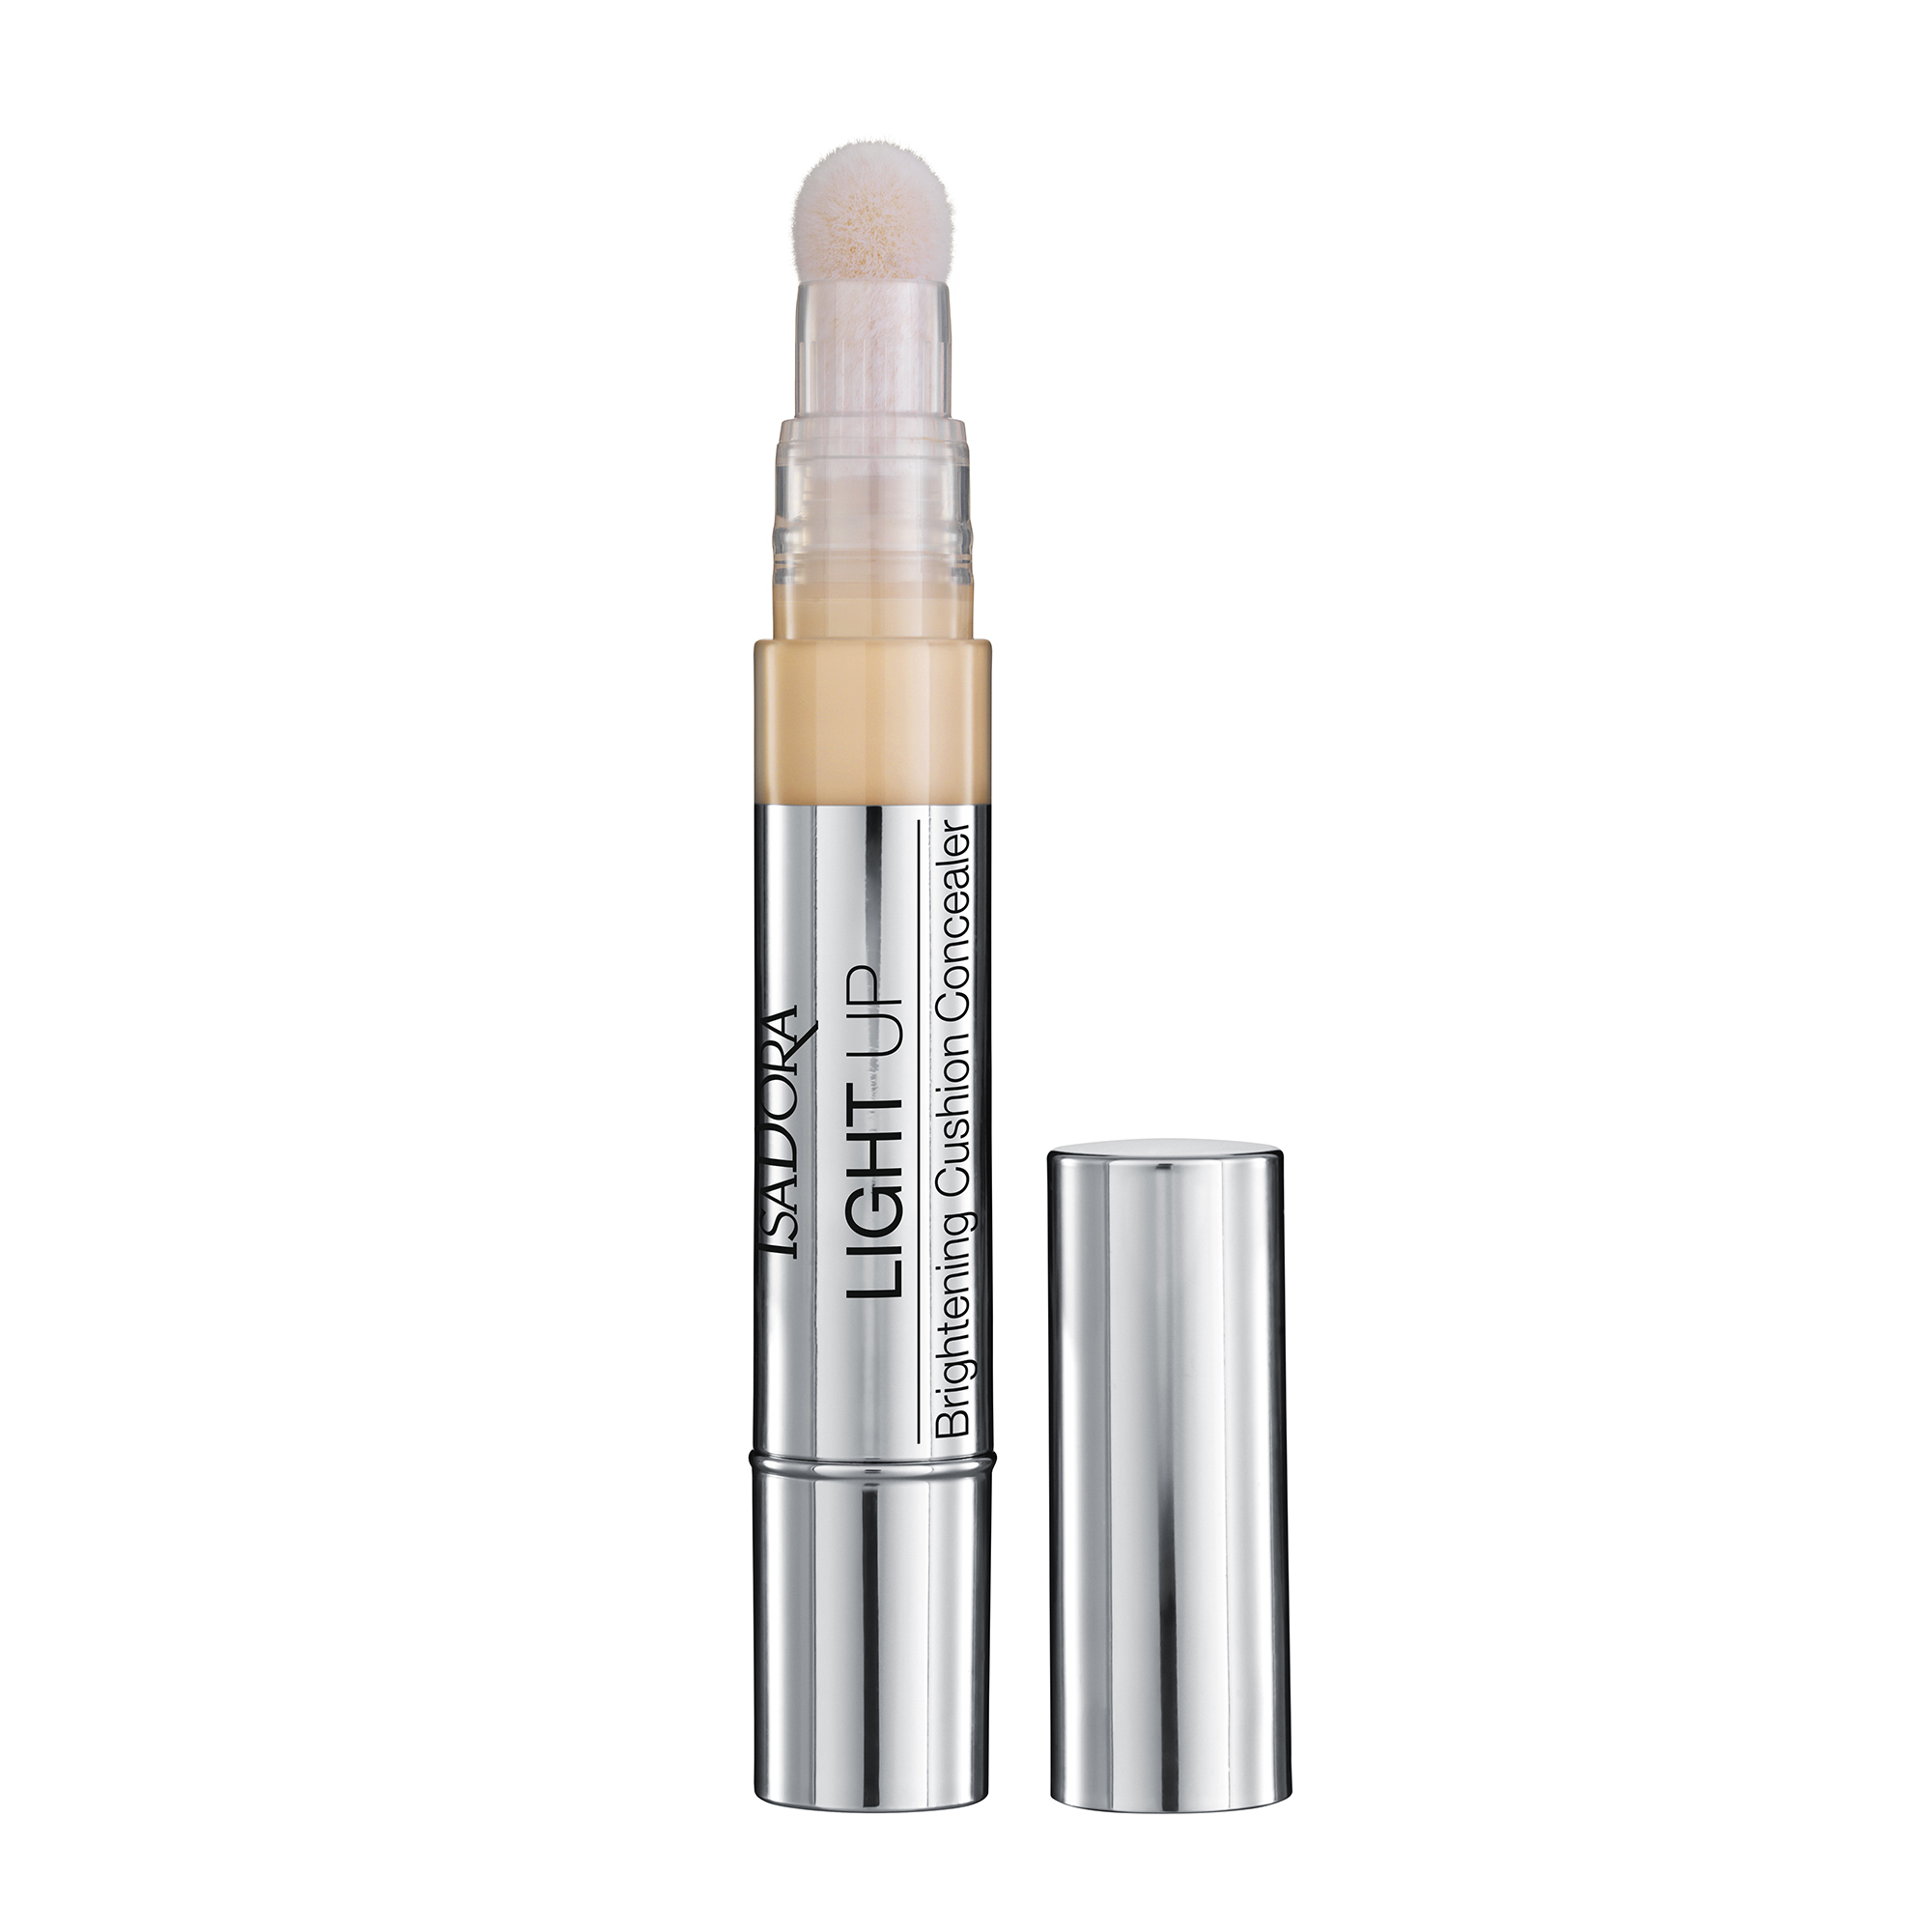 Light Up Brightening Cushion Concealer